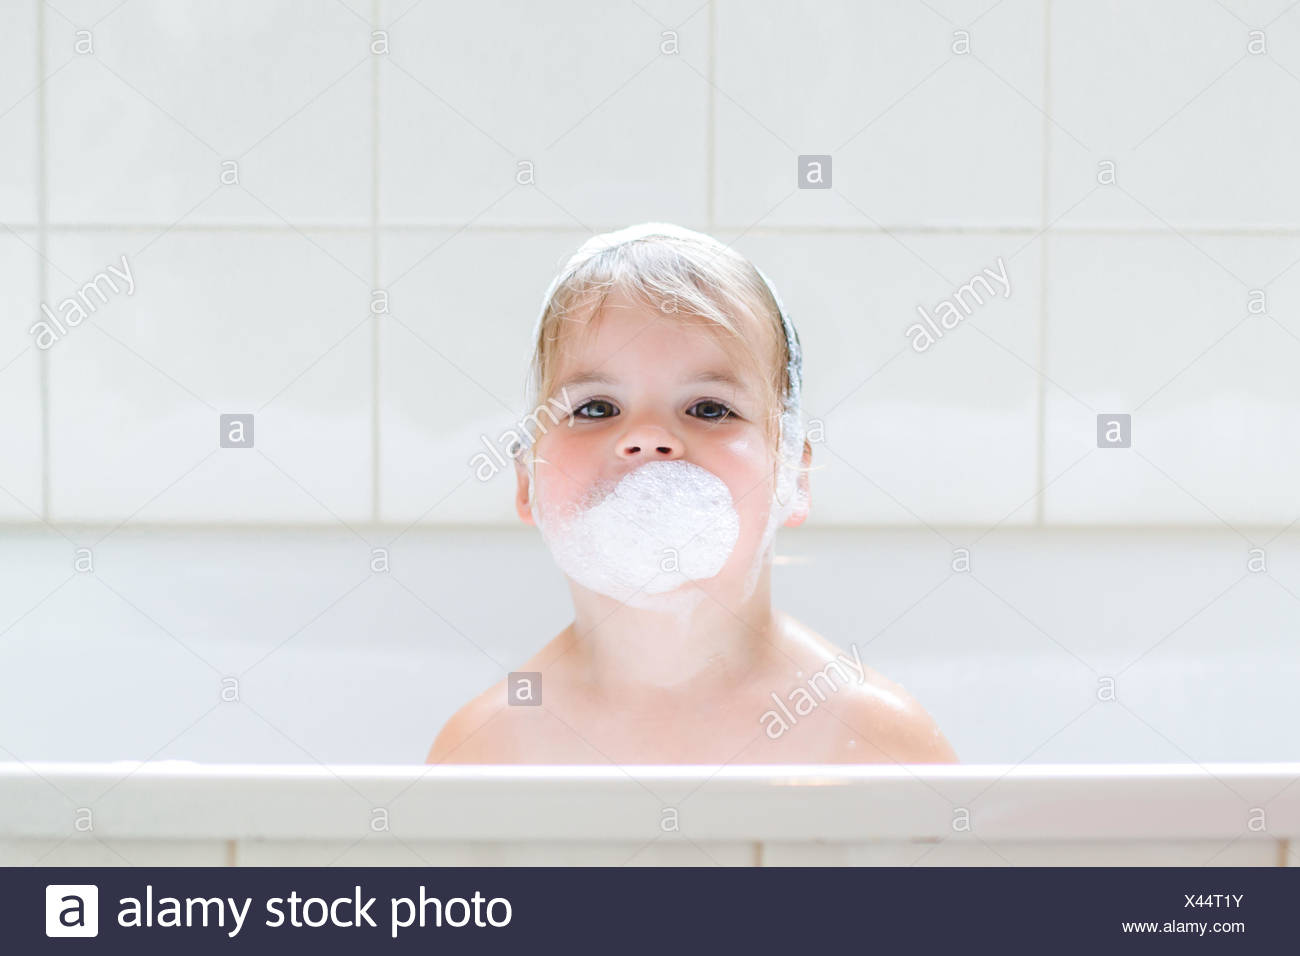 Girl in bath with bubble bath suds on face - Stock Image